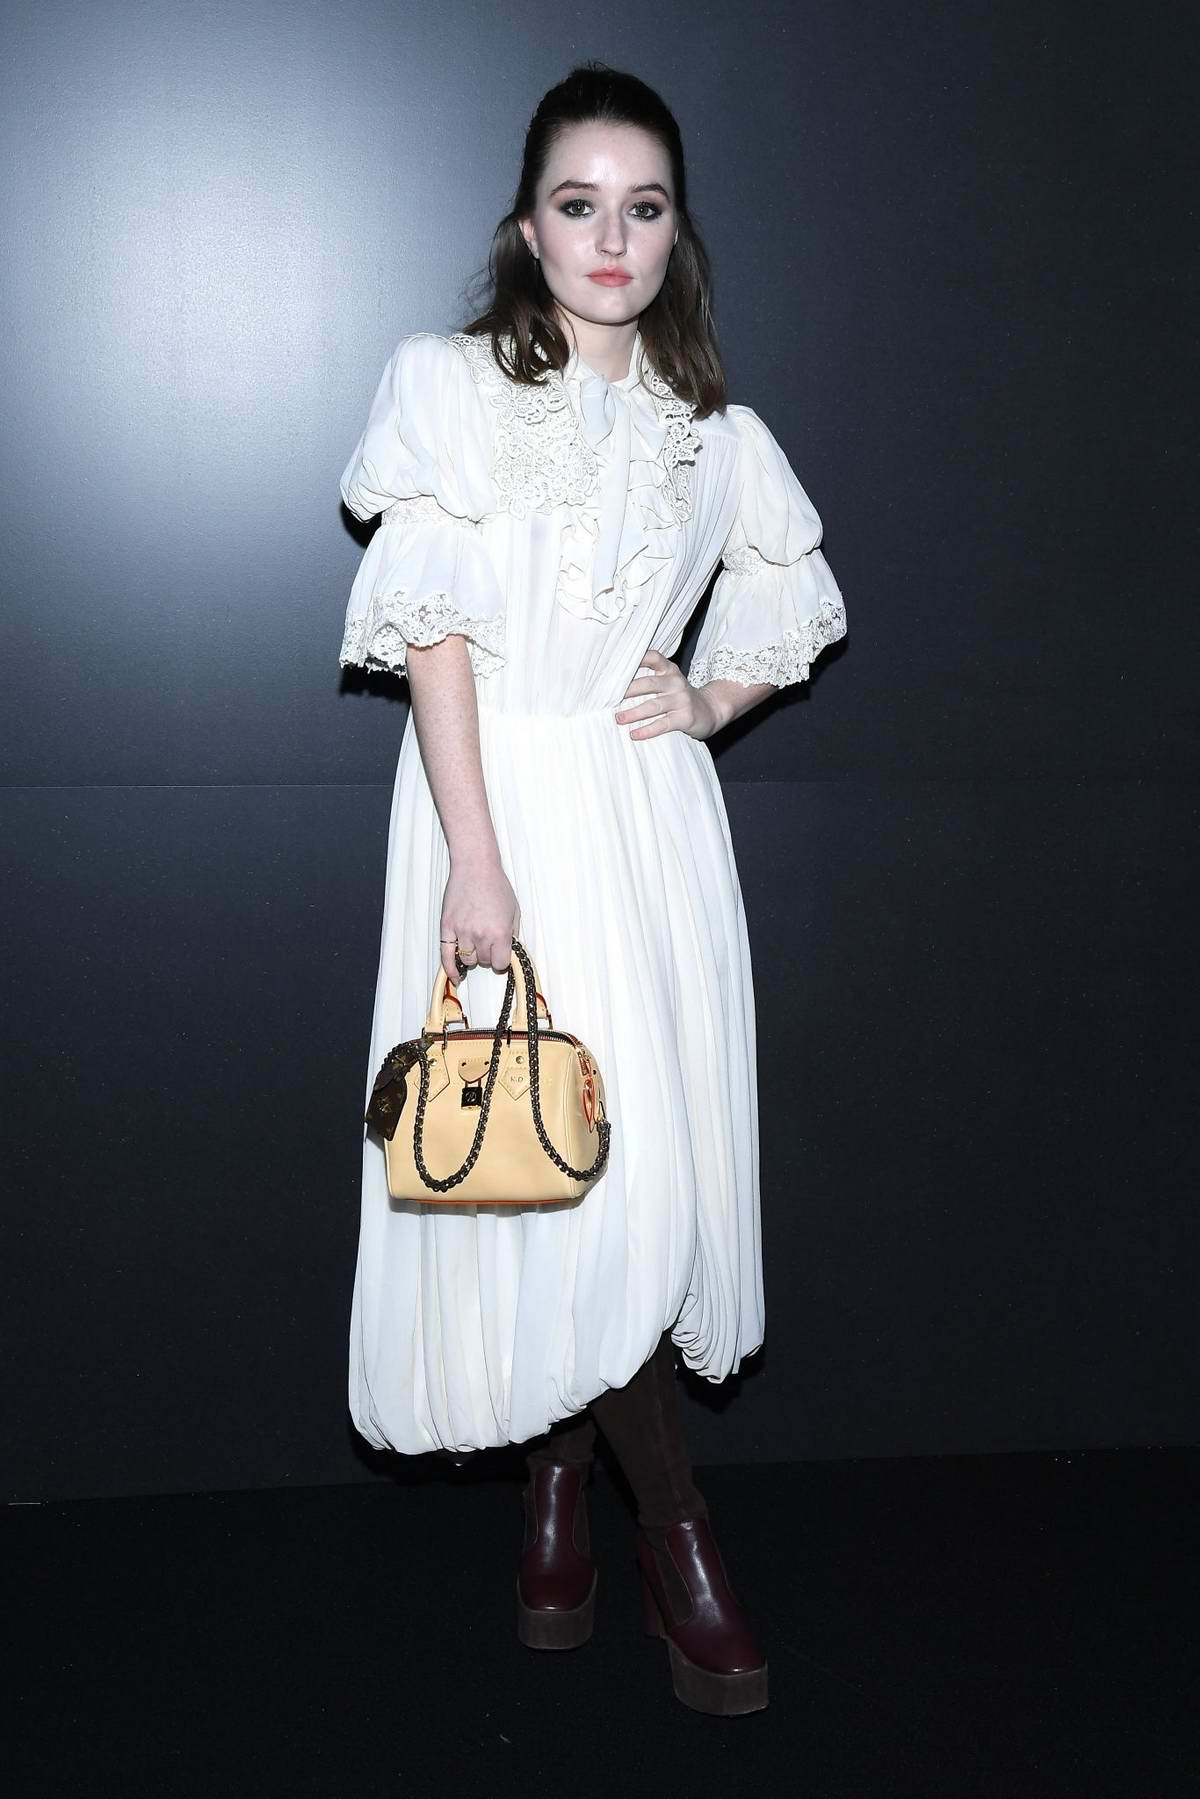 Kaitlyn Dever attends the Louis Vuitton fashion show, F/W 2020 during Paris Fashion Week in Paris, France